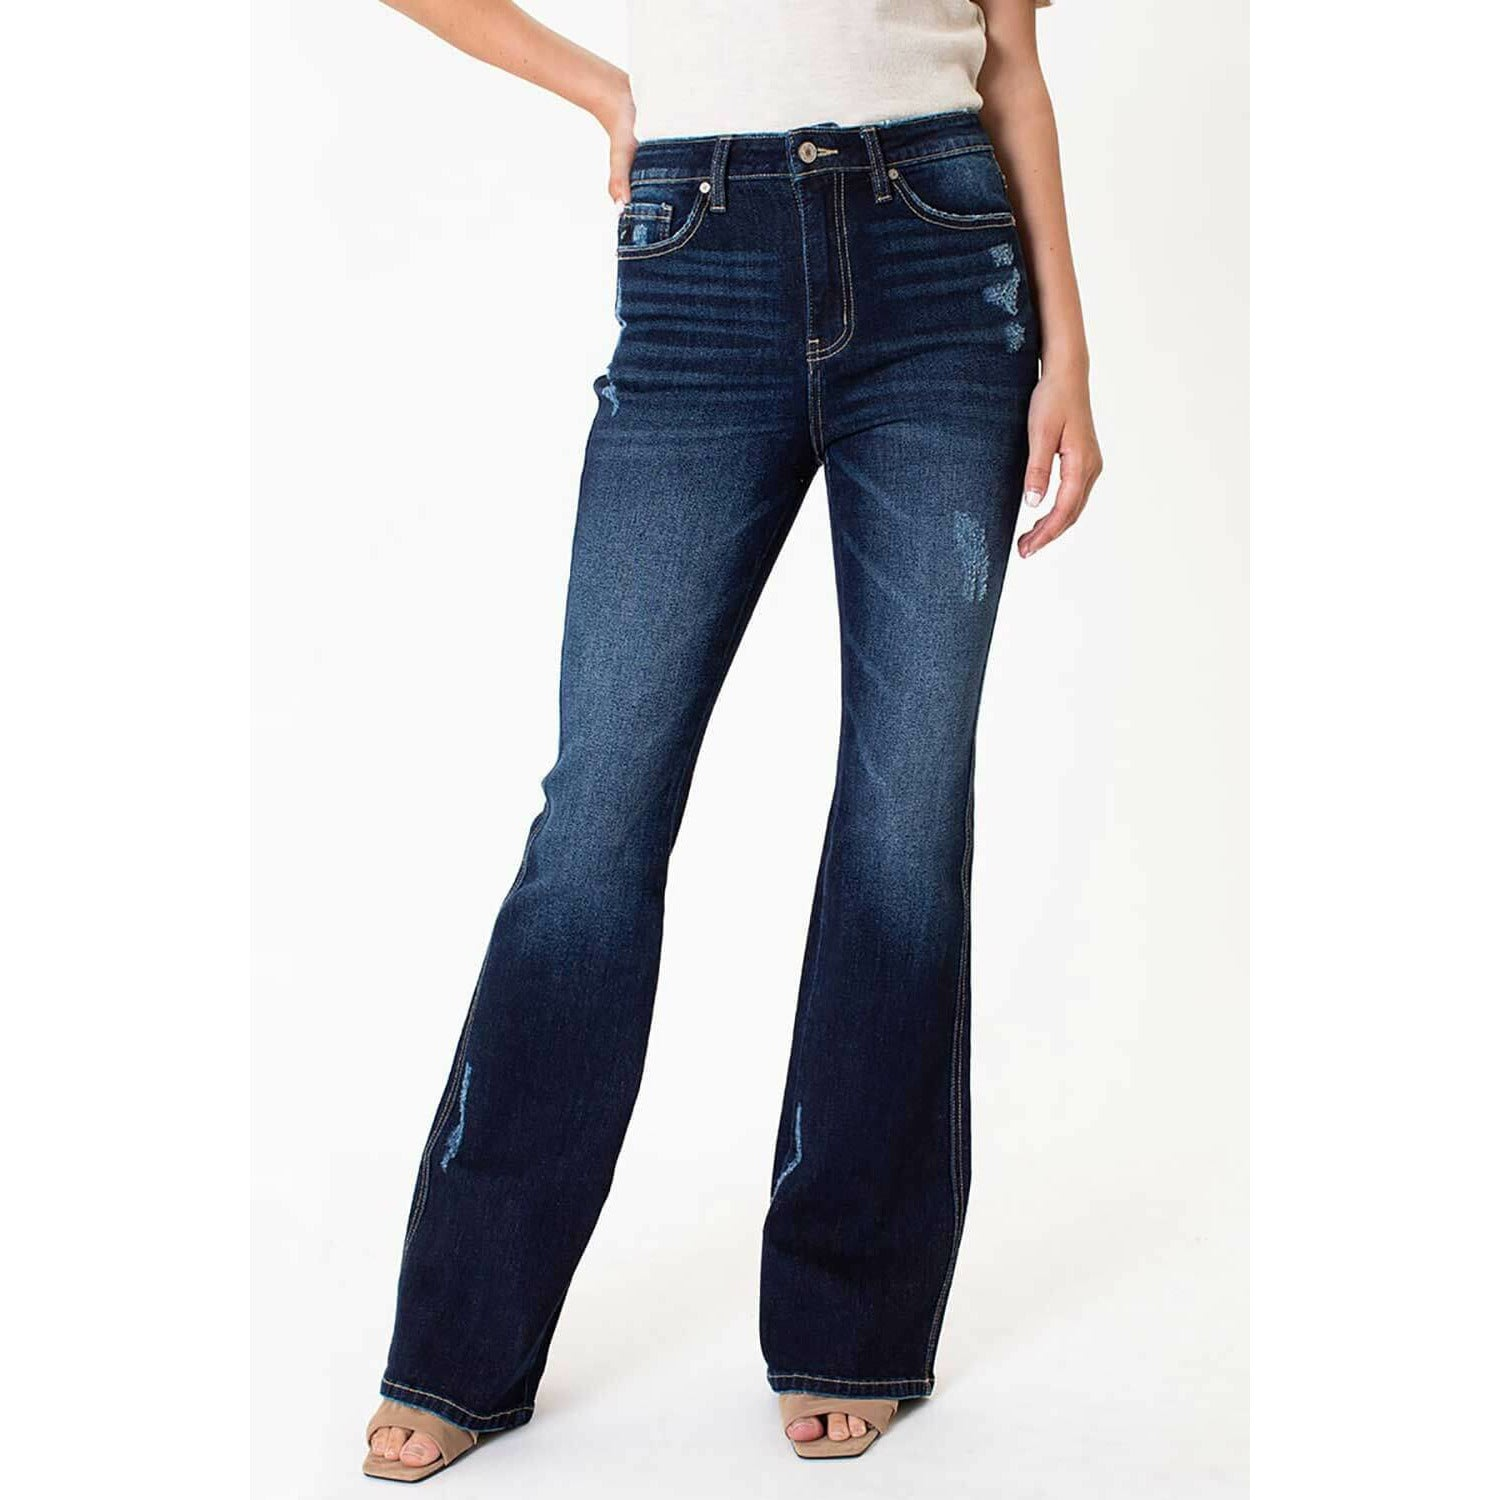 Olivia KanCan High Rise Distressed Flare Jeans